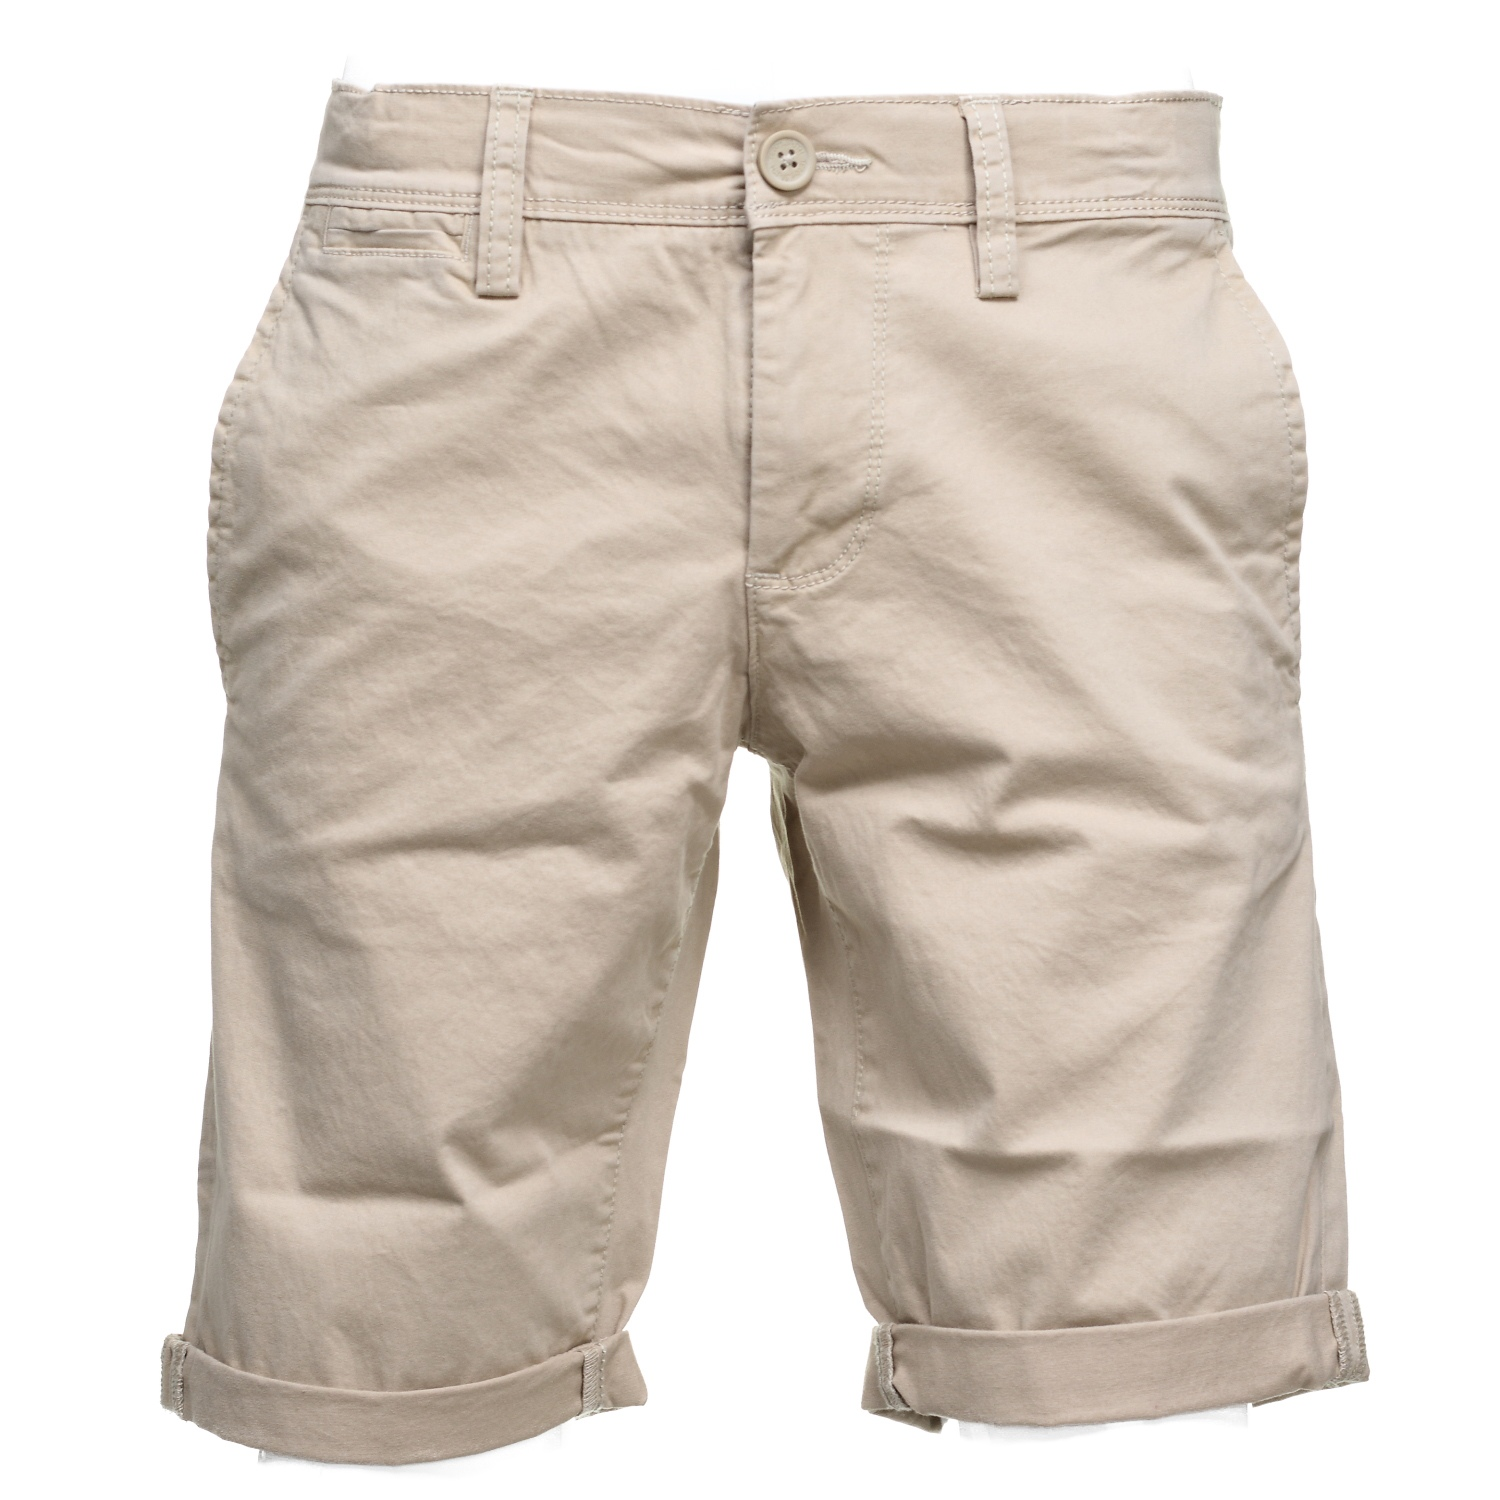 http://www.leadermode.com/167181/teddy-smith-short-chino-60404679d-222-beige.jpg